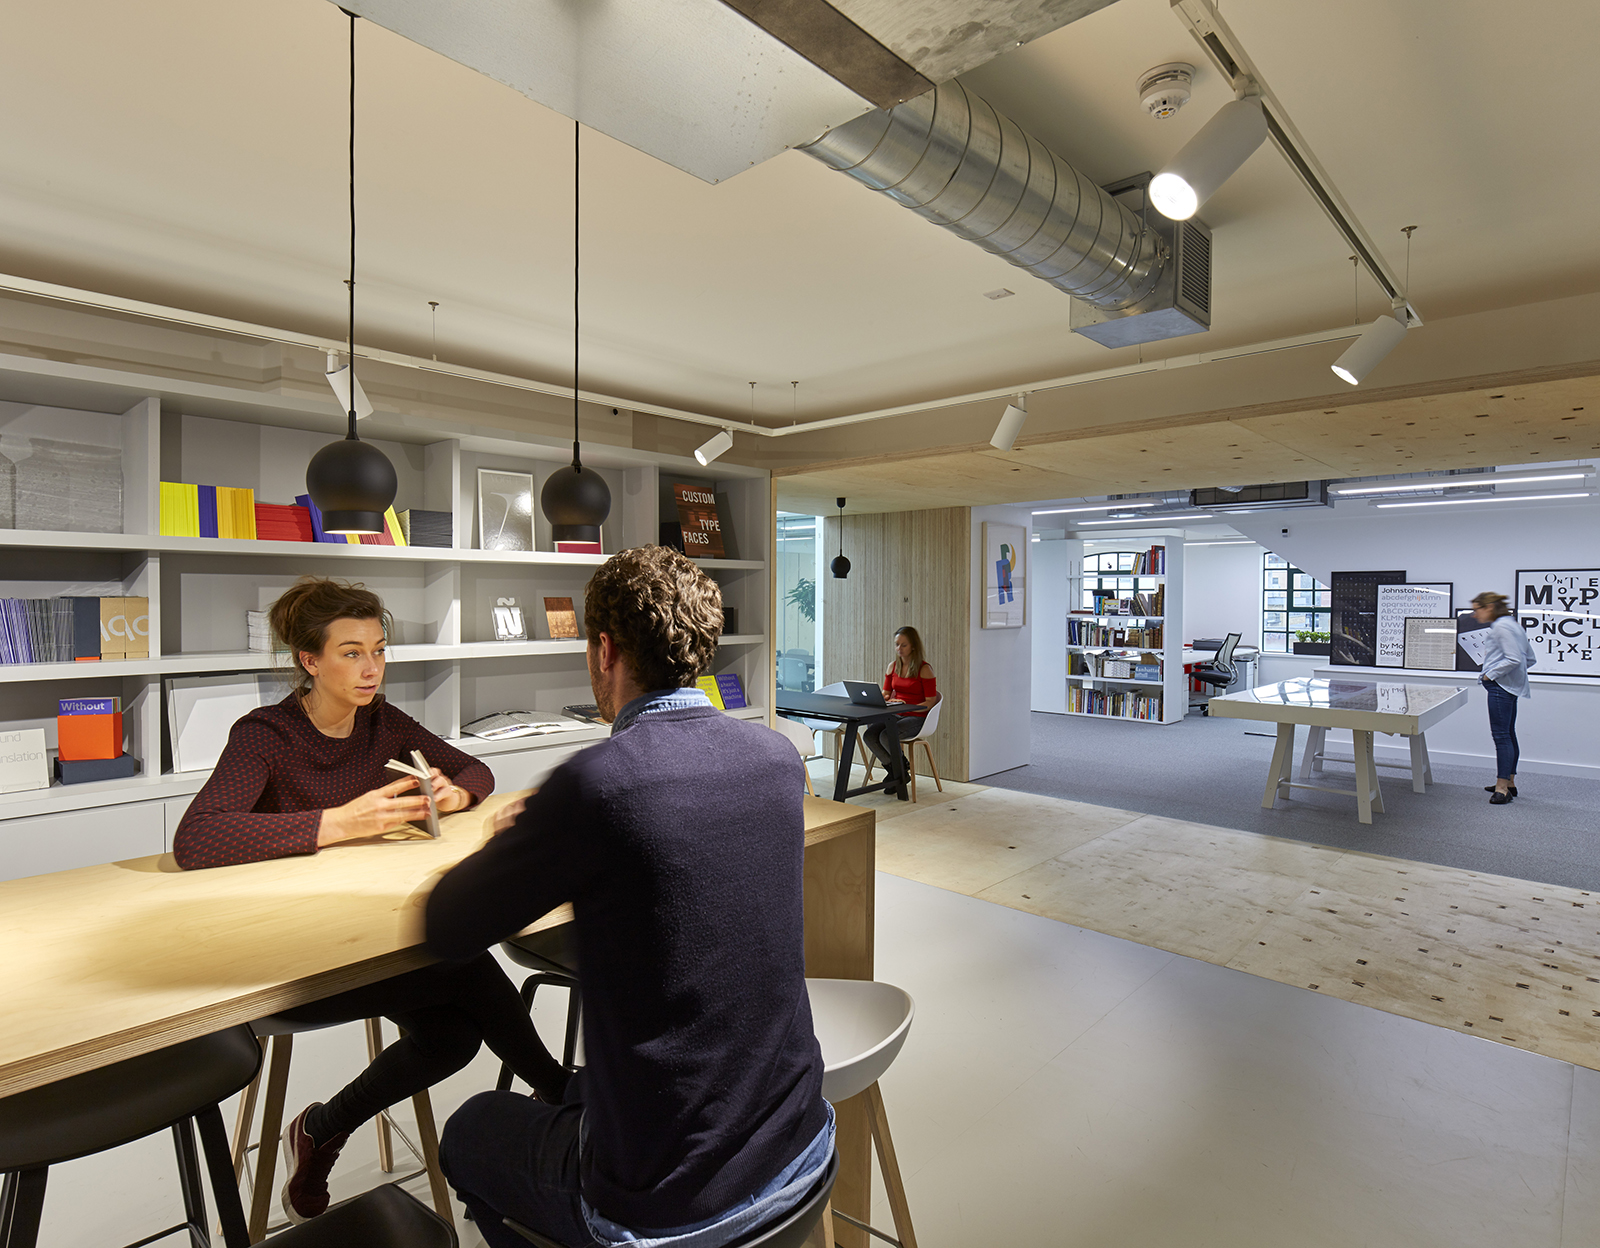 monotype-london-office-12